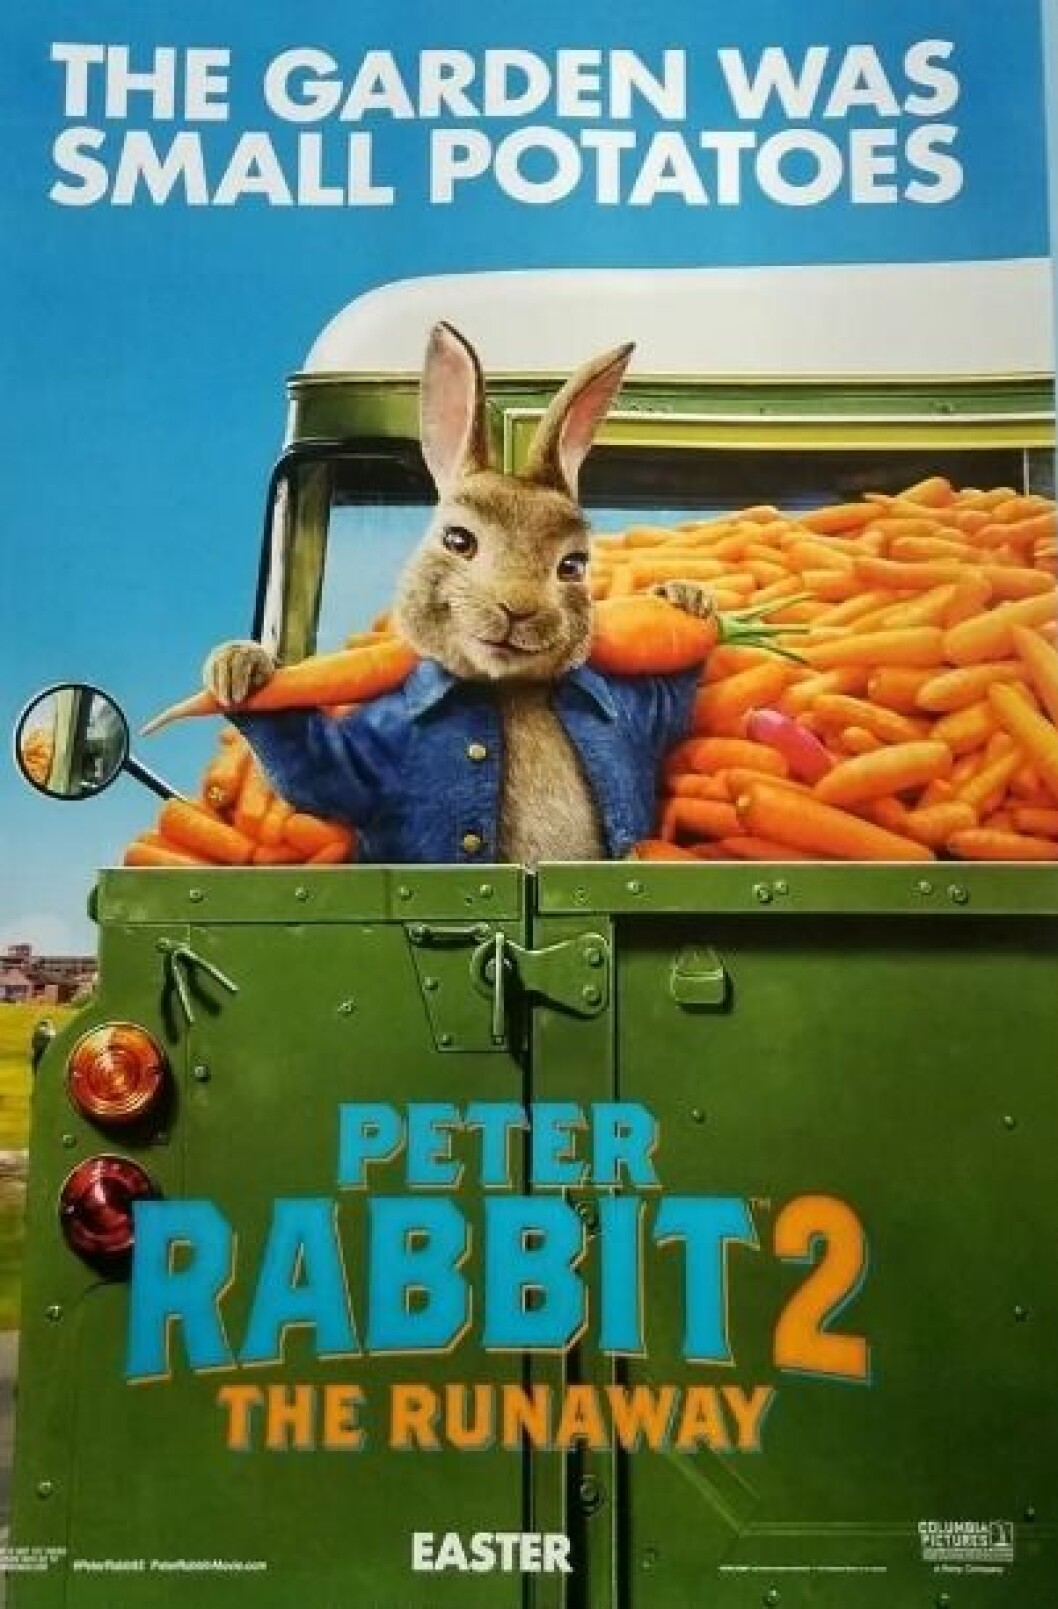 Peter Rabbit 2.